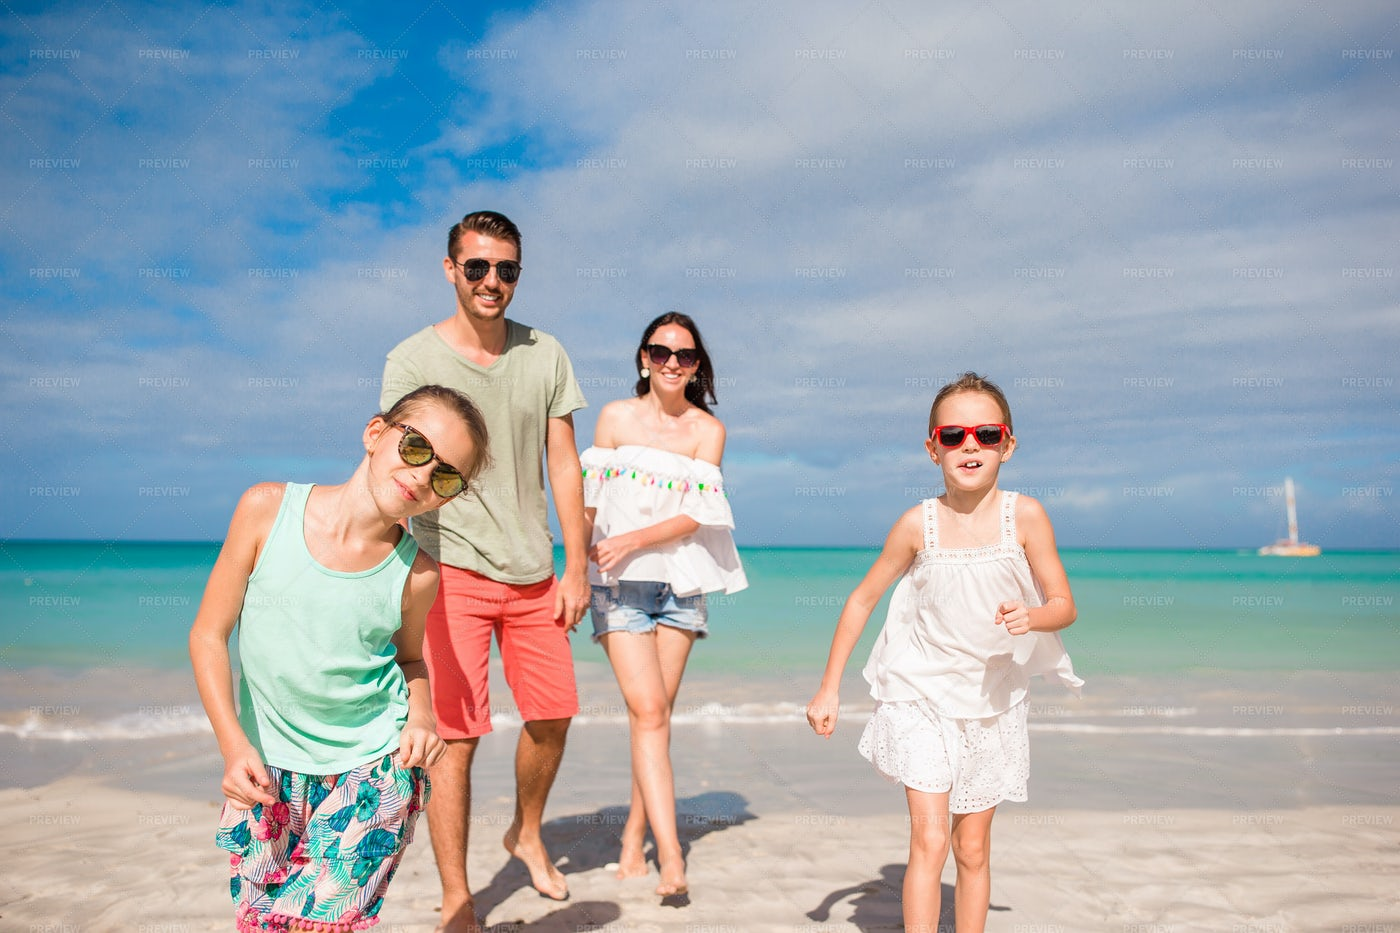 Young Family On Vacation: Stock Photos